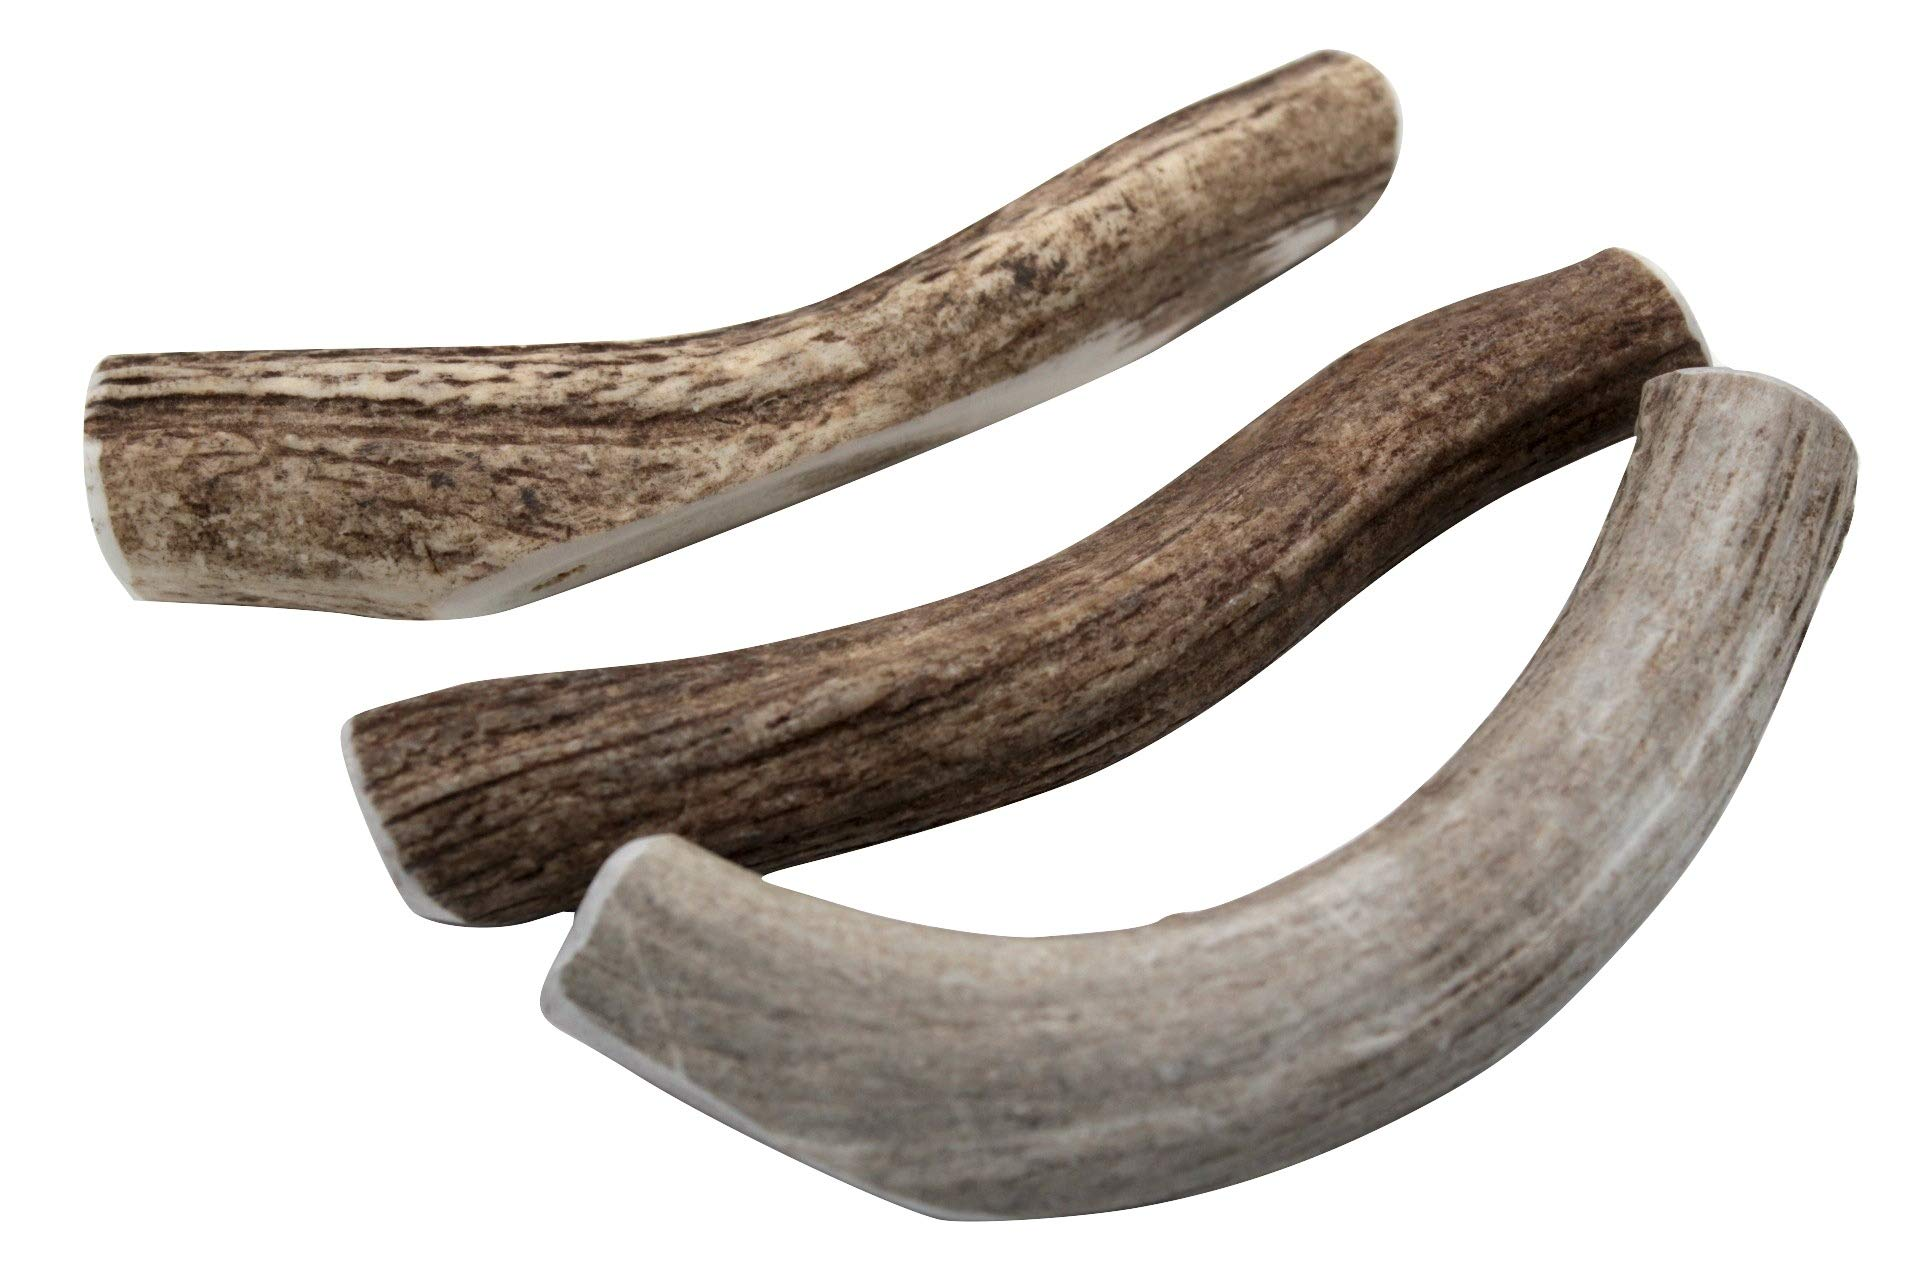 Large Antler Dog Chews, 2-pac is Now a 3-Pack 6-8 in. long,Premium Healthy antlers for Dogs Treats, by Deer Valley Dog Chews by Deer valley dog chews